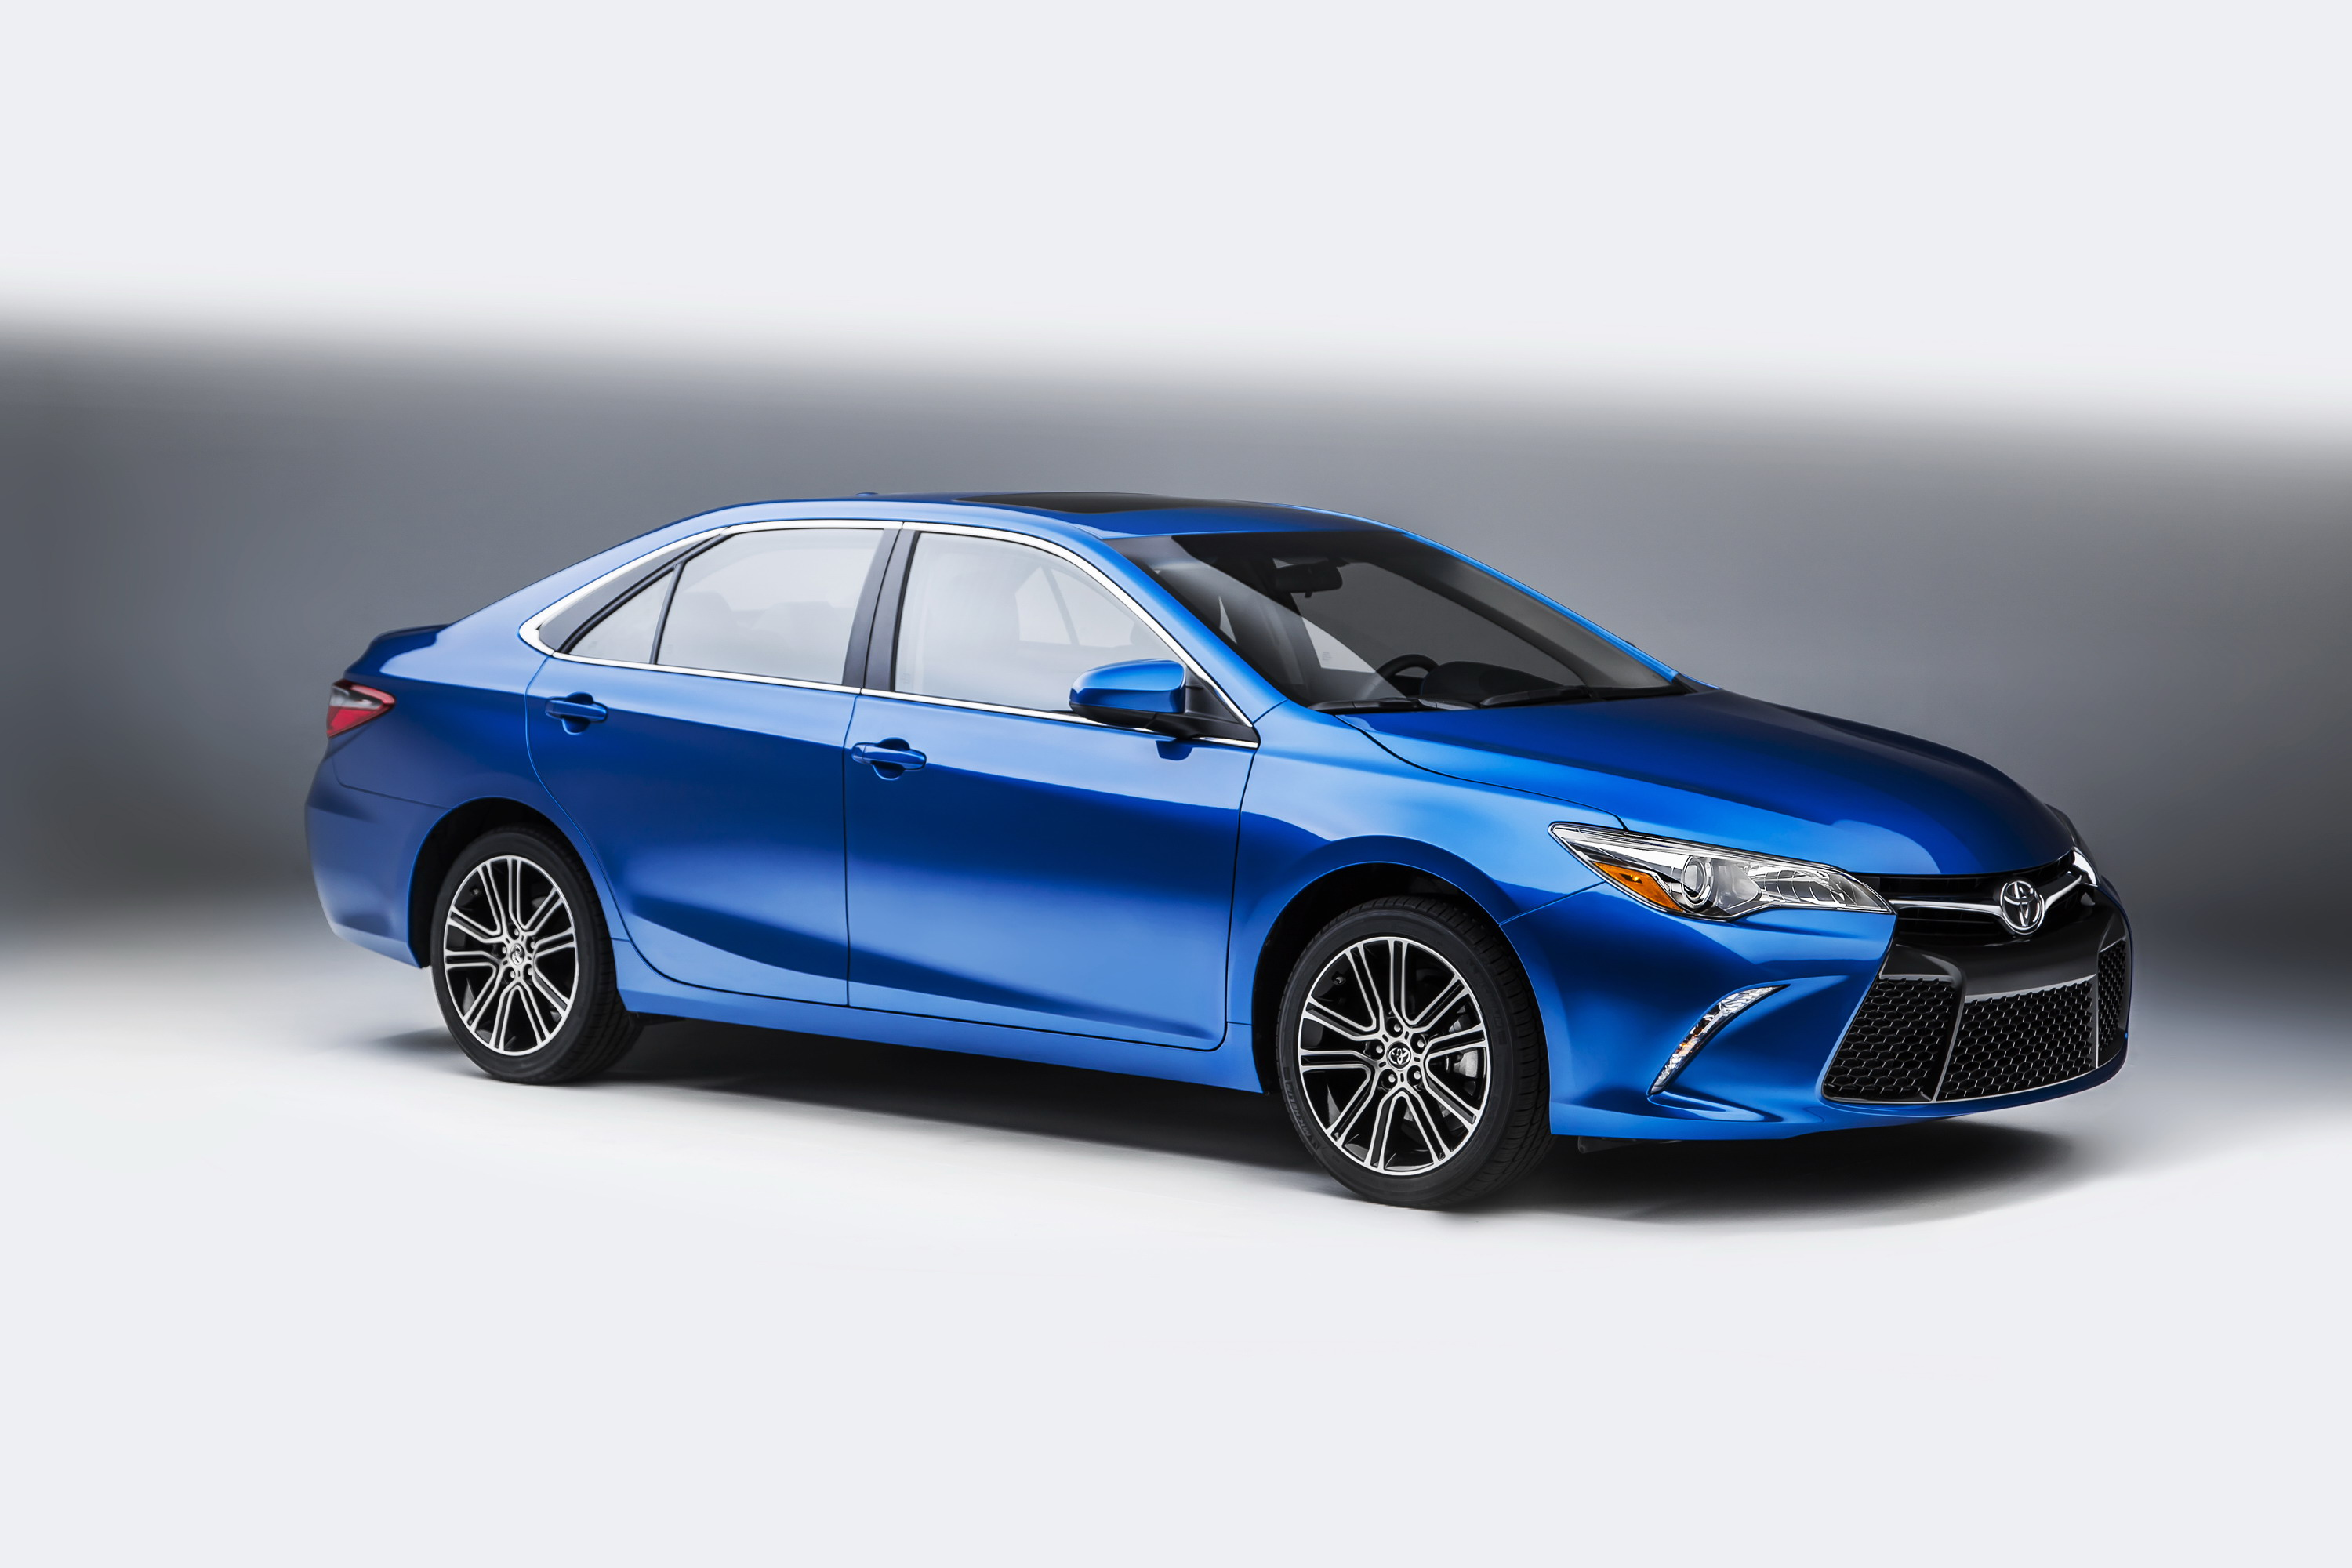 first ever reviews but the camry drive better same as toyota